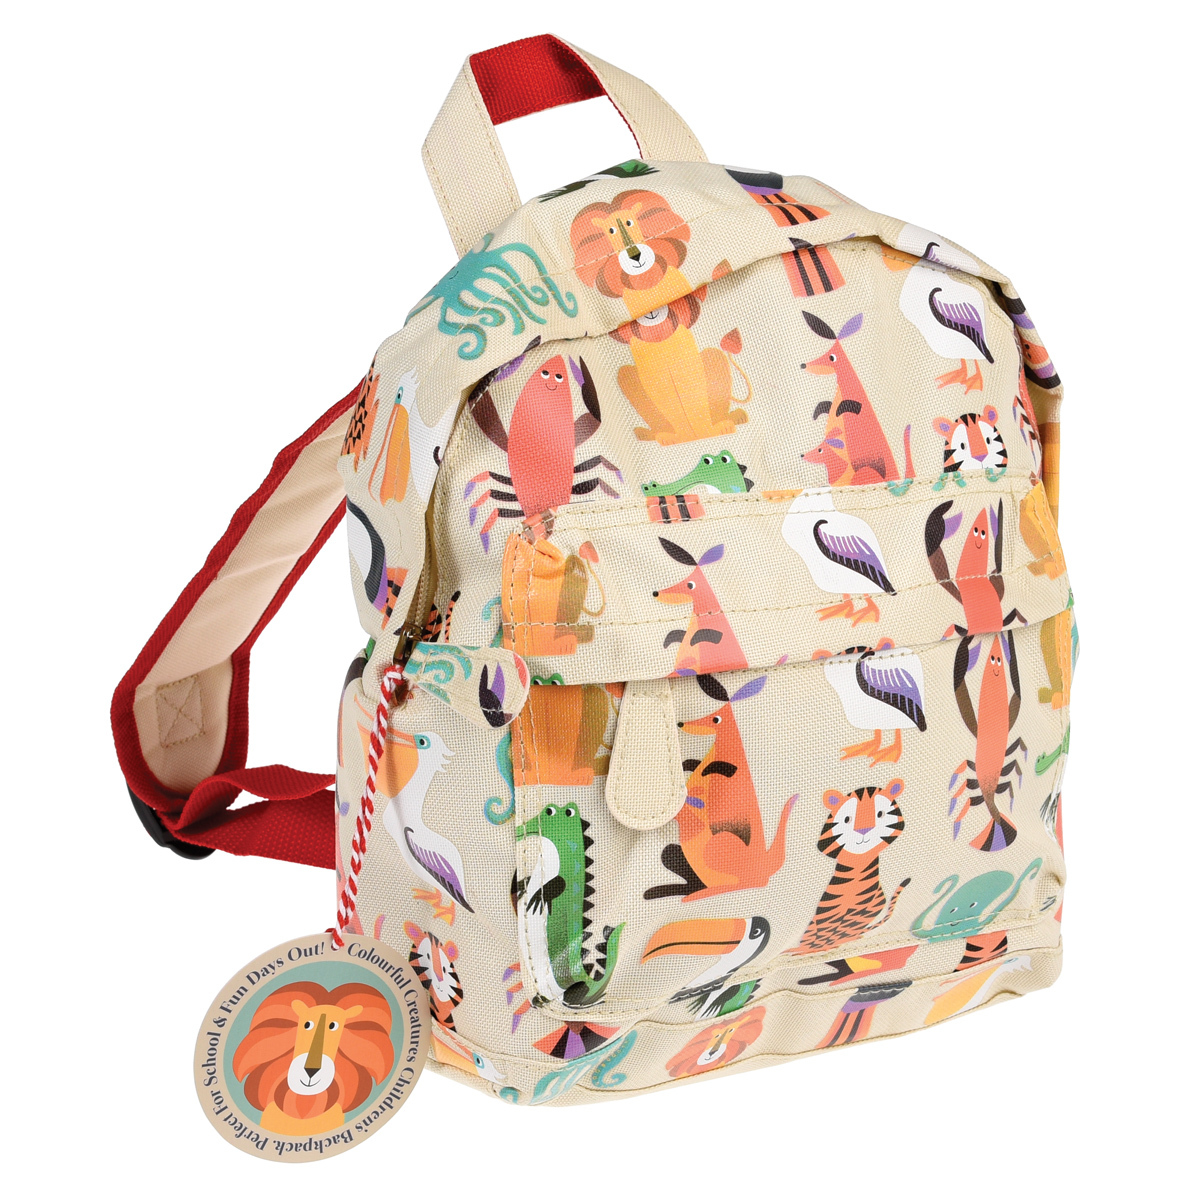 Bagagerie enfant Sac à Dos - Colorful Creatures Sac à Dos - Colorful Creatures